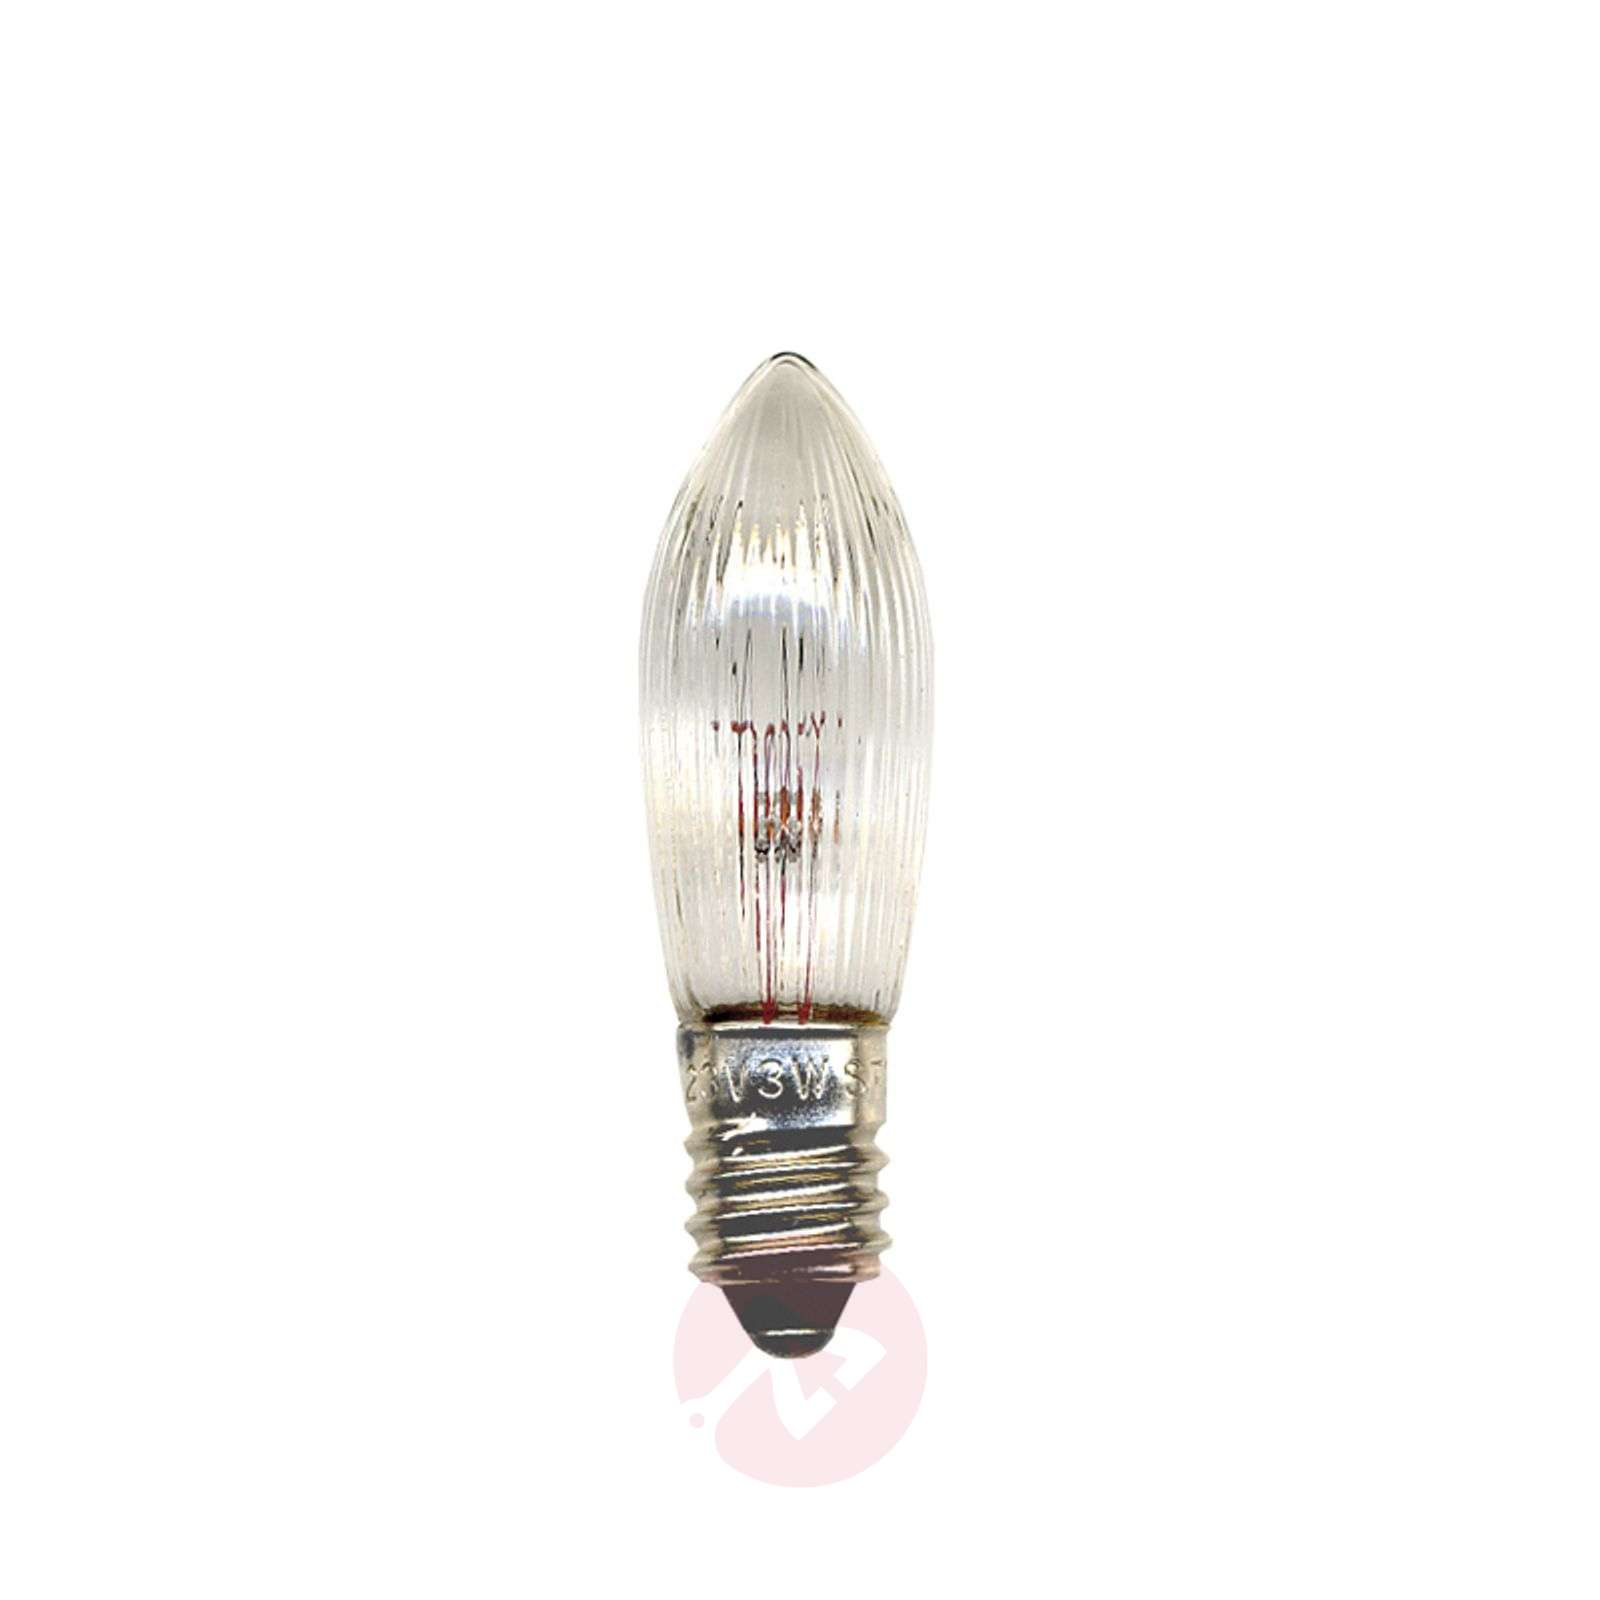 E10 2.4 W 12 V bulb, pack of 3, candle shape-1522322-01